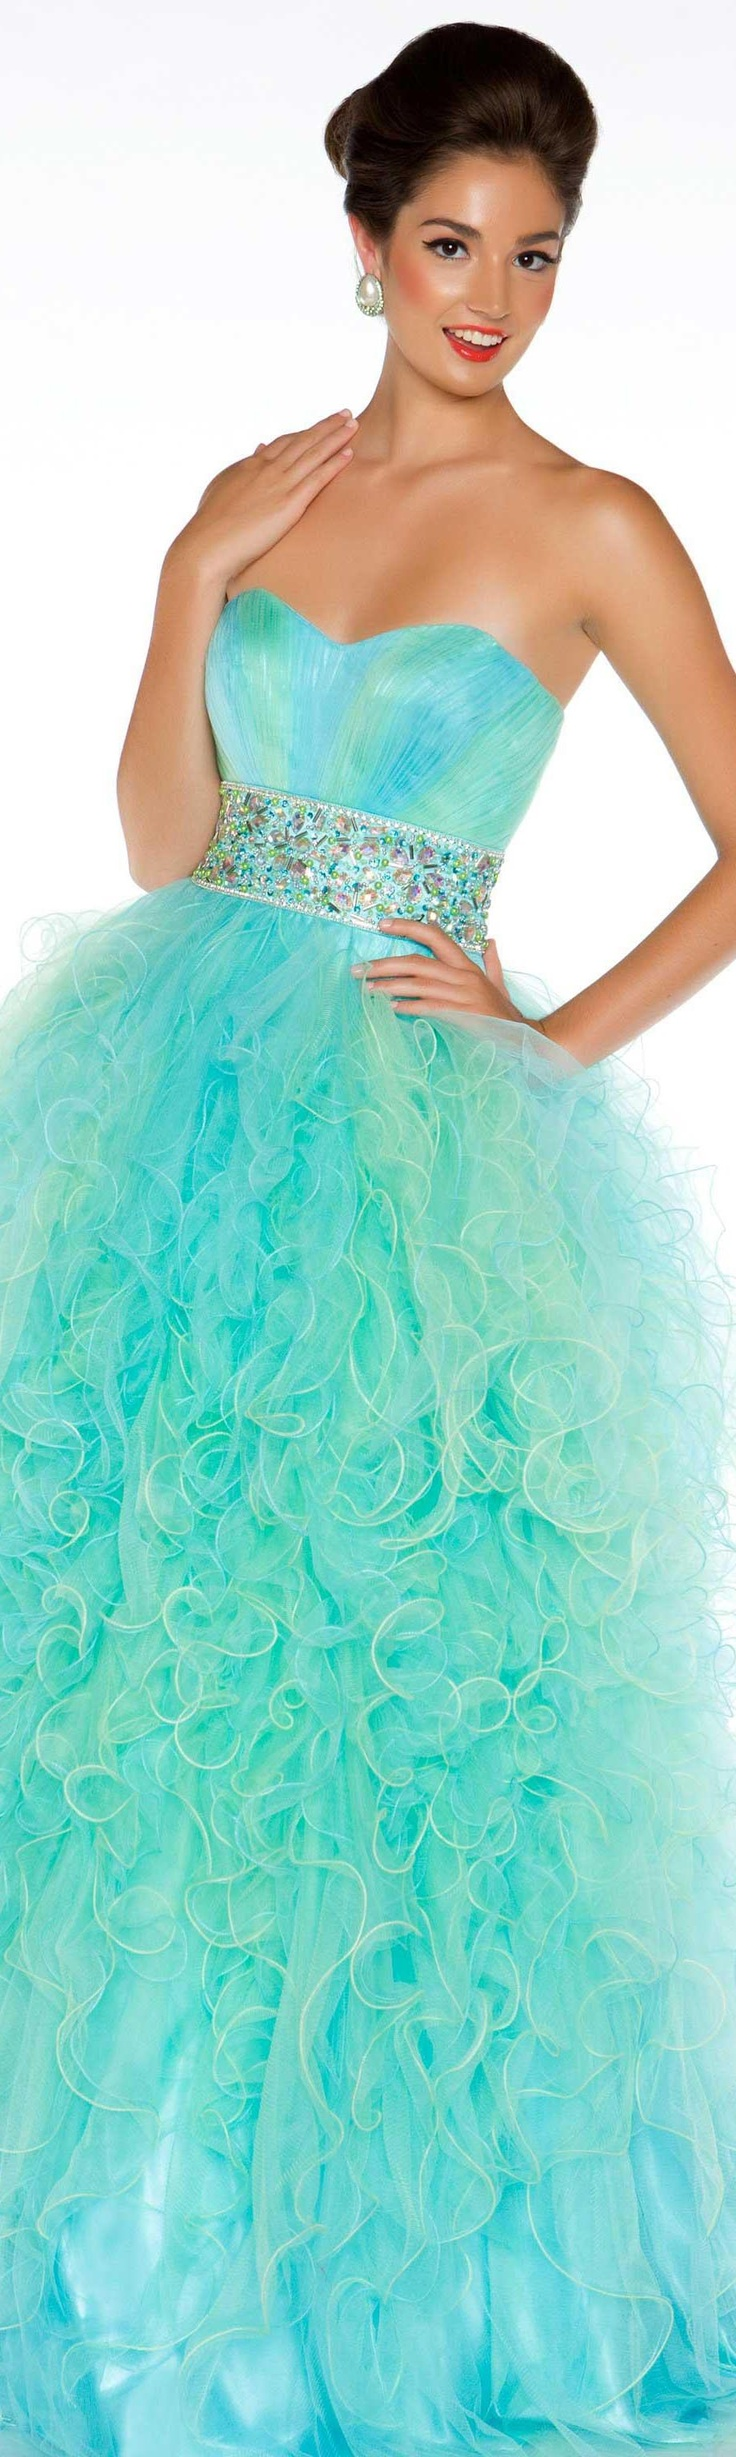 The best images about morp on pinterest prom decor prom